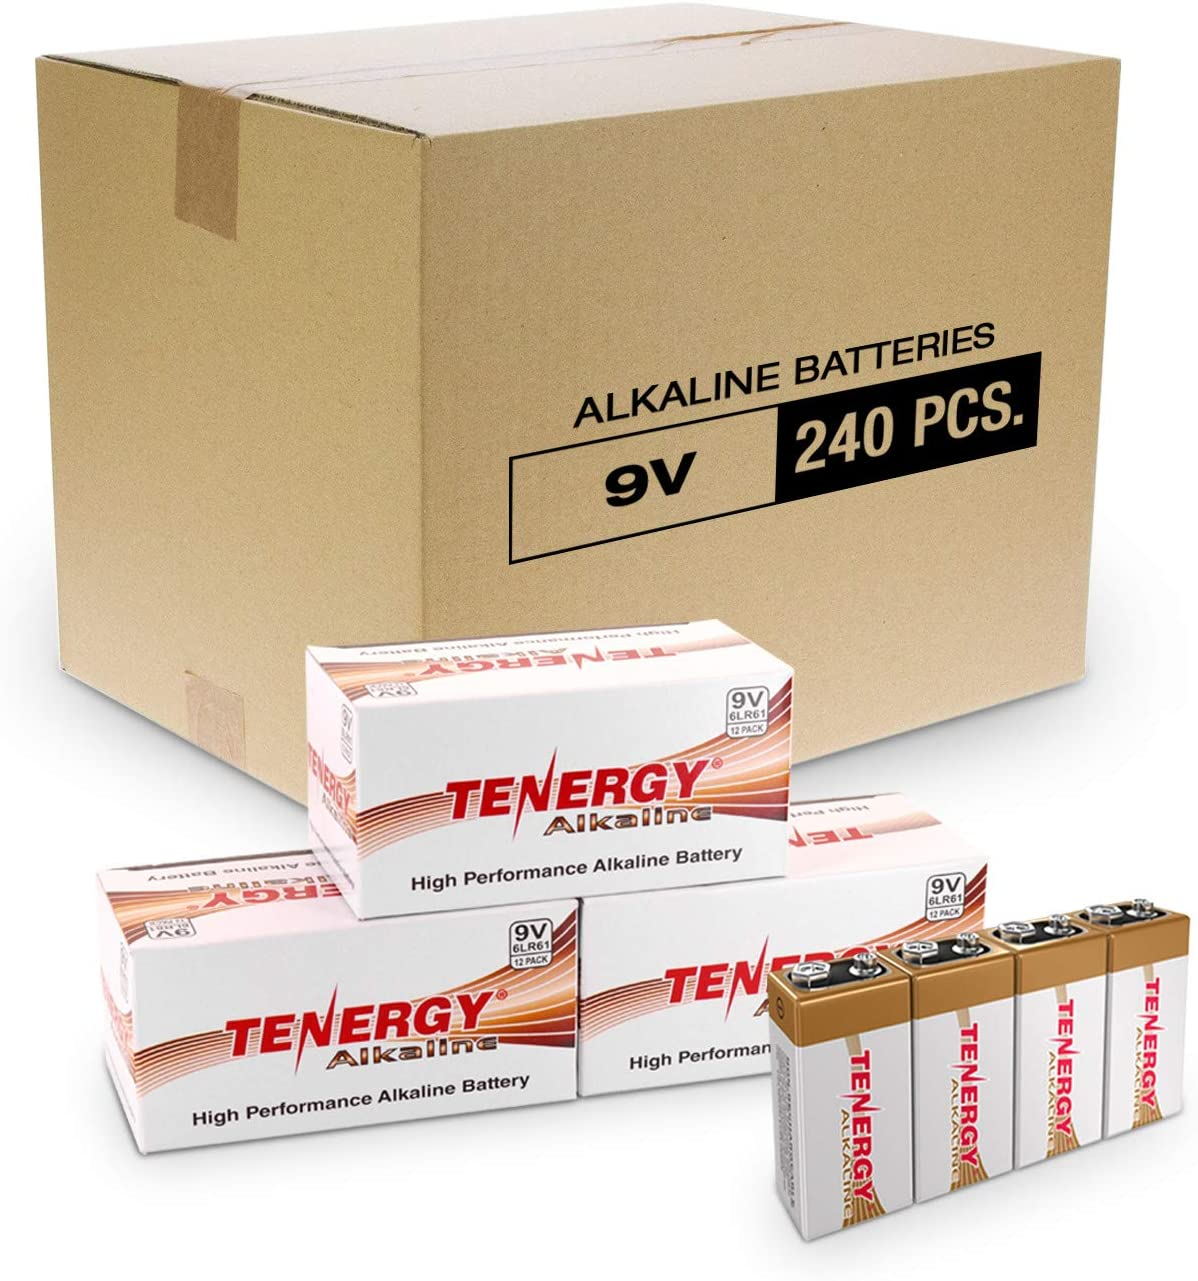 Tenergy 6LR61 9V Alkaline Battery, Non-Rechargeable Battery for Smoke Alarms, Guitar Pickups, Microphones and More, 240-Pack